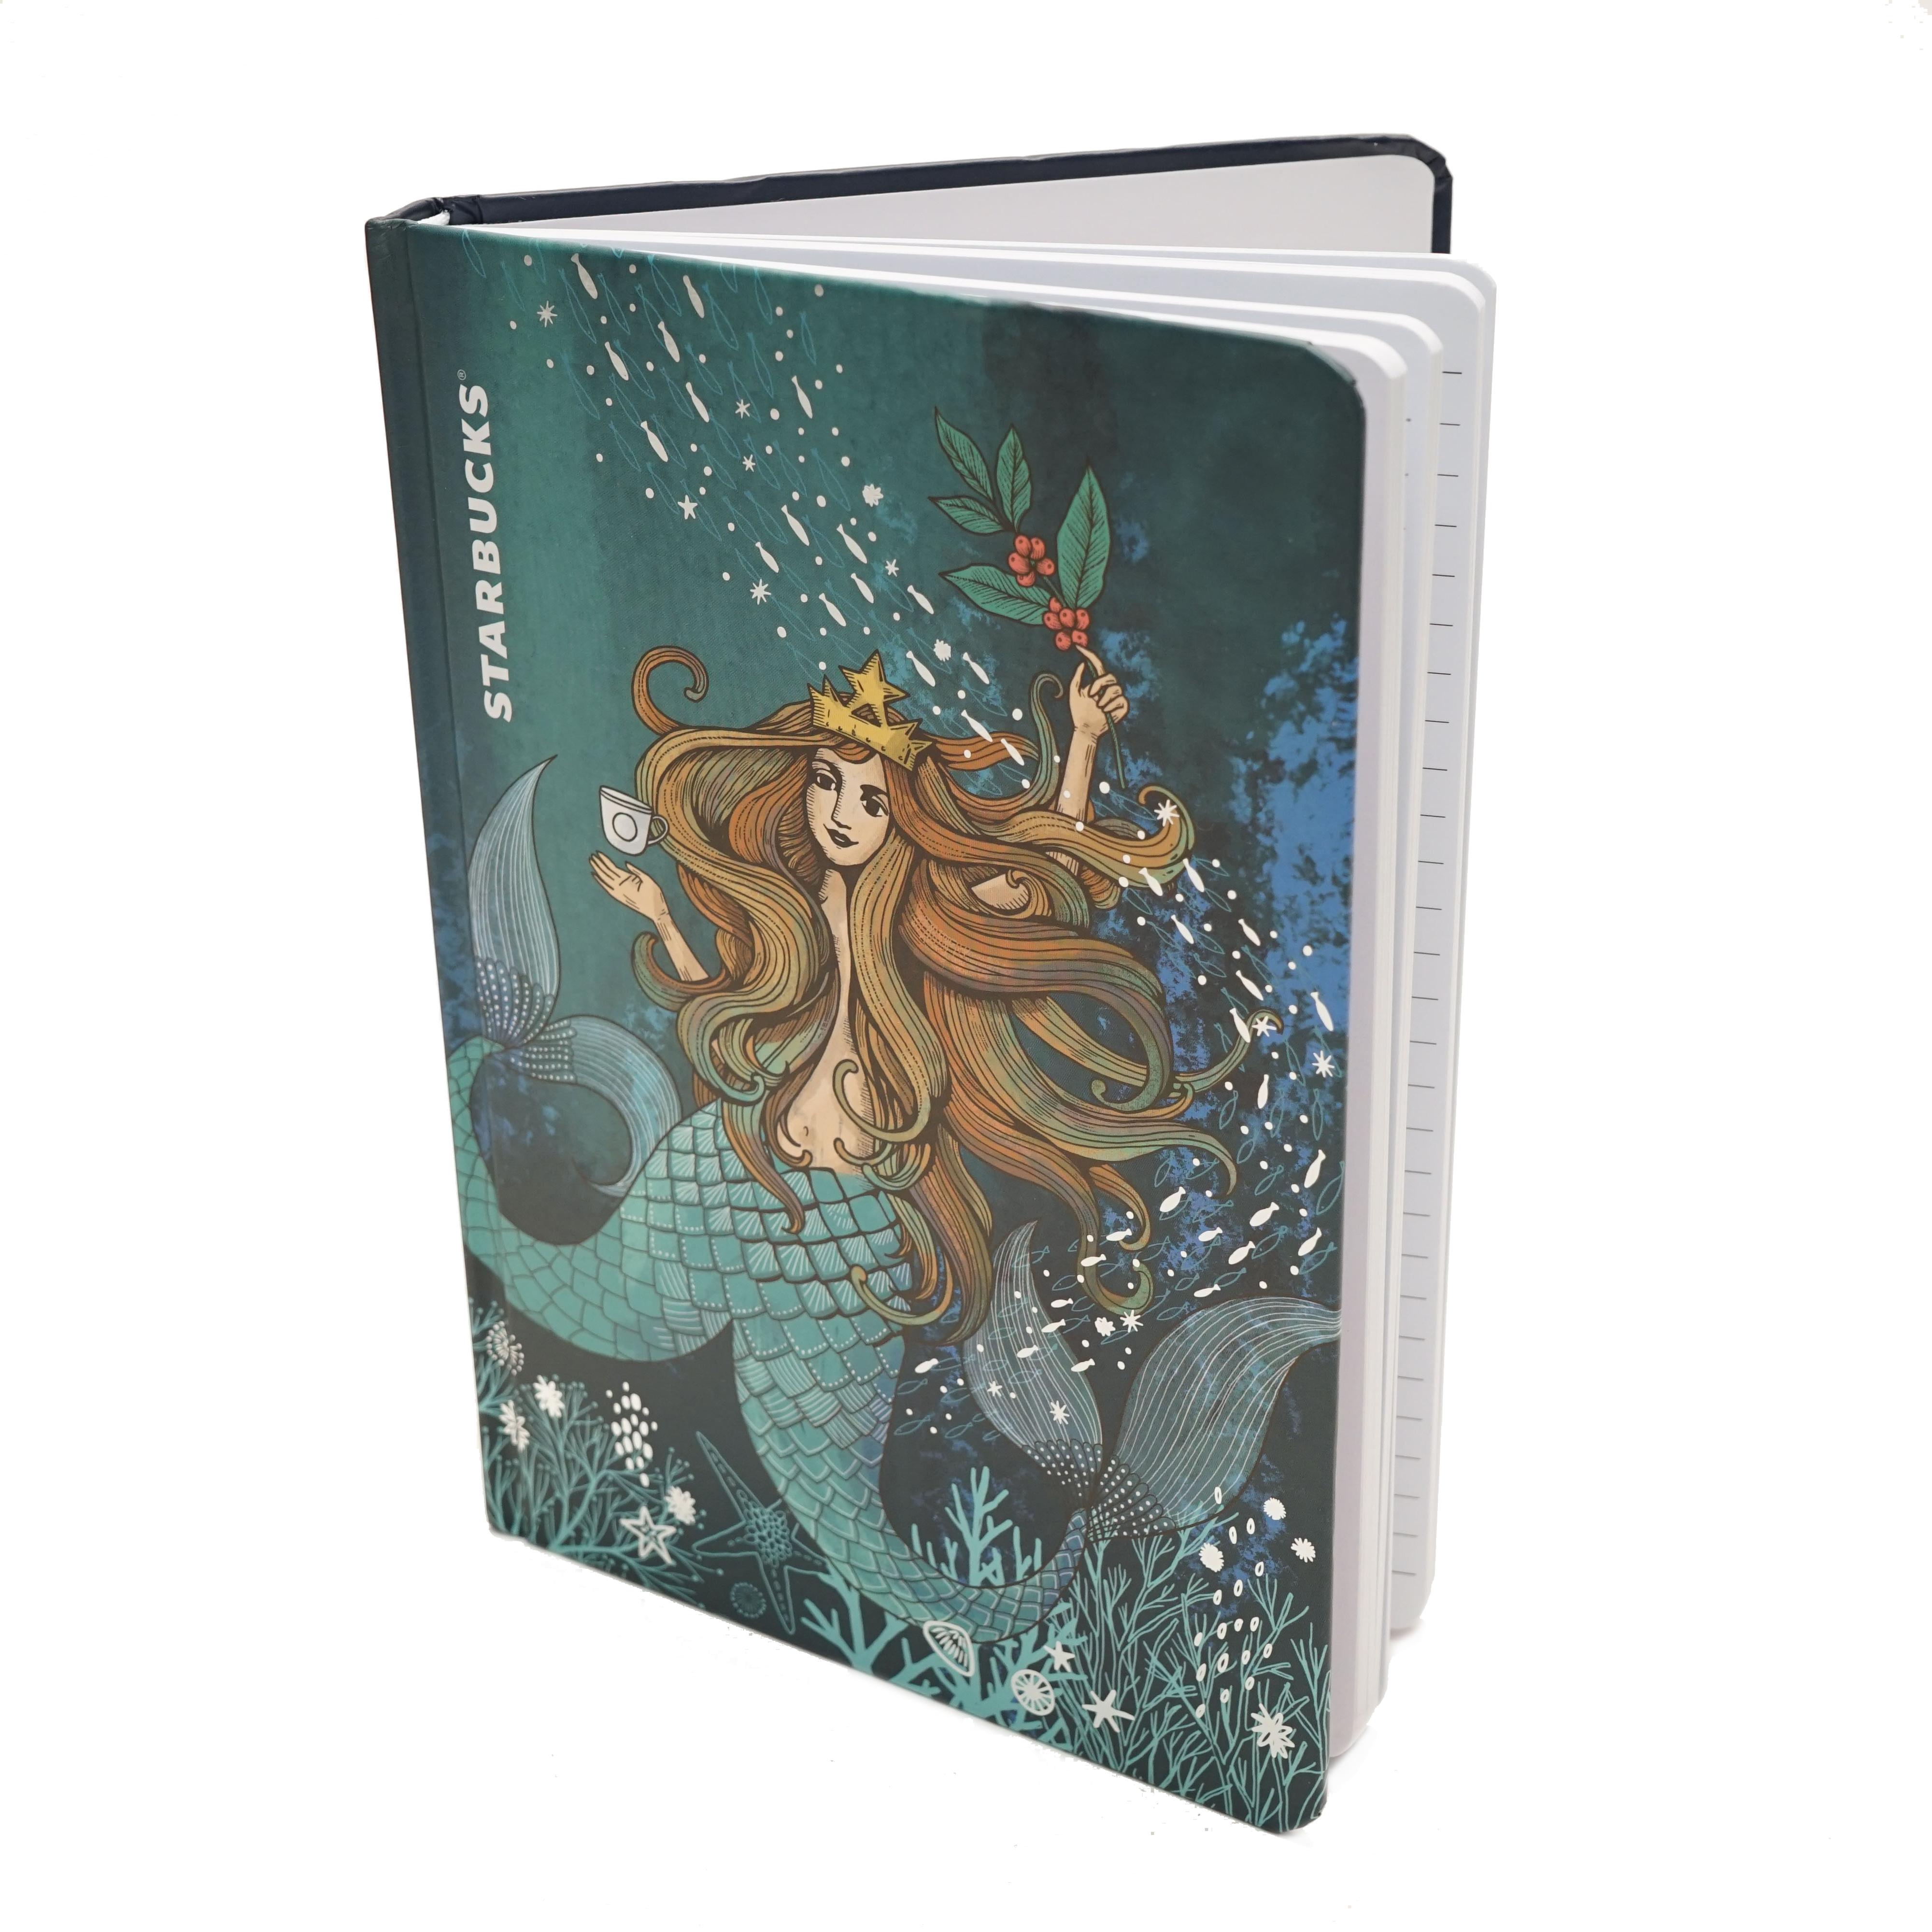 Starbucks Siren Notebook